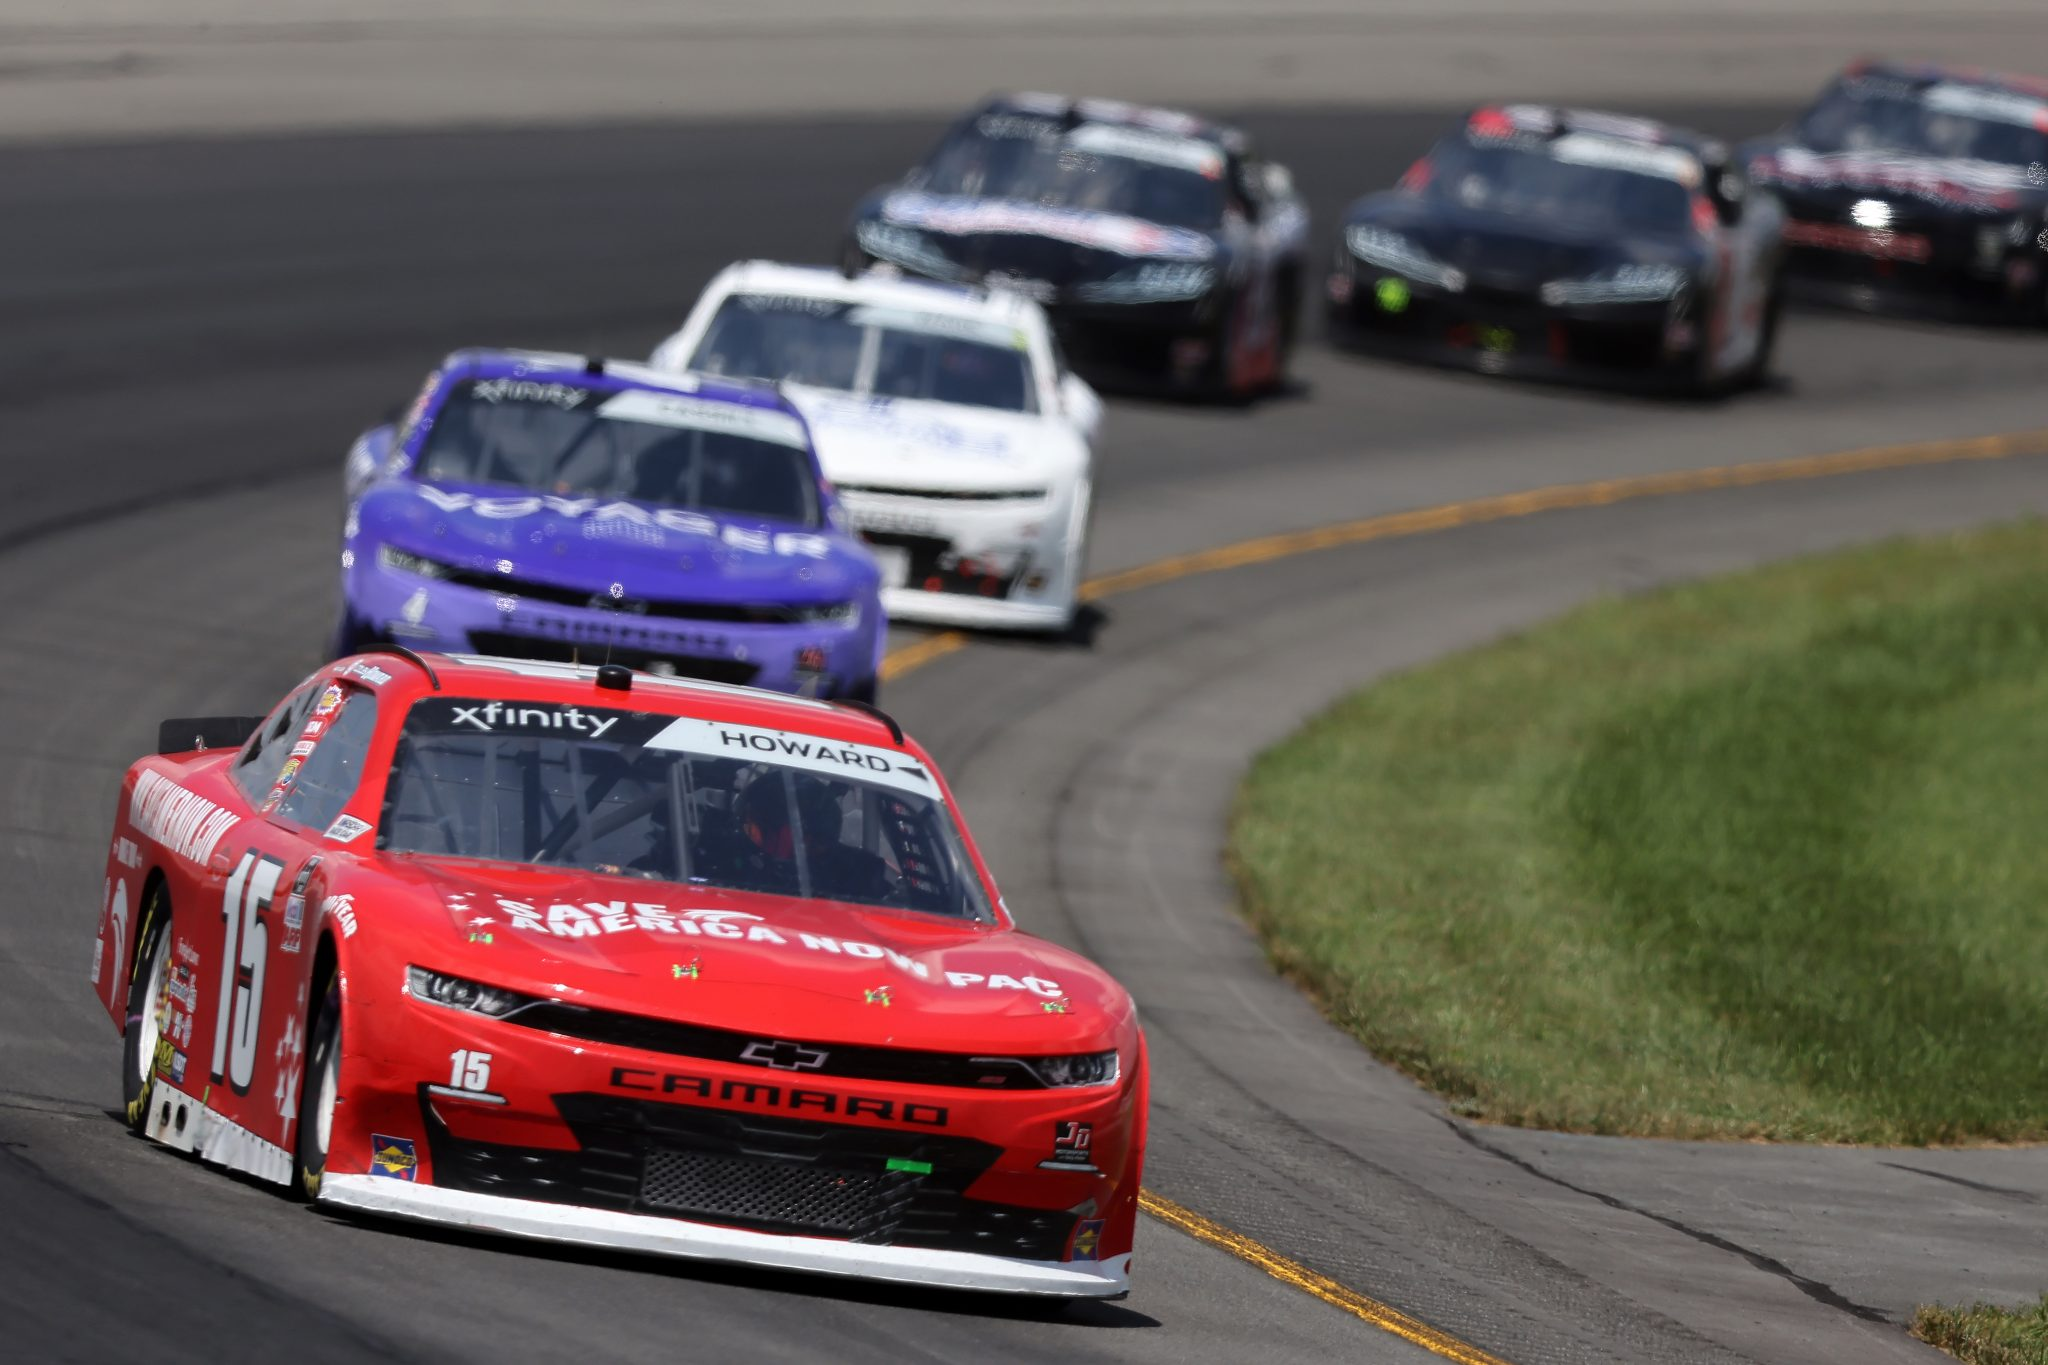 LONG POND, PENNSYLVANIA - JUNE 27: Colby Howard, driver of the #15 Save America Now PAC Chevrolet, drives during the NASCAR Xfinity Series Pocono Green 225 Recycled by J.P. Mascaro & Sons at Pocono Raceway on June 27, 2021 in Long Pond, Pennsylvania. (Photo by James Gilbert/Getty Images)   Getty Images